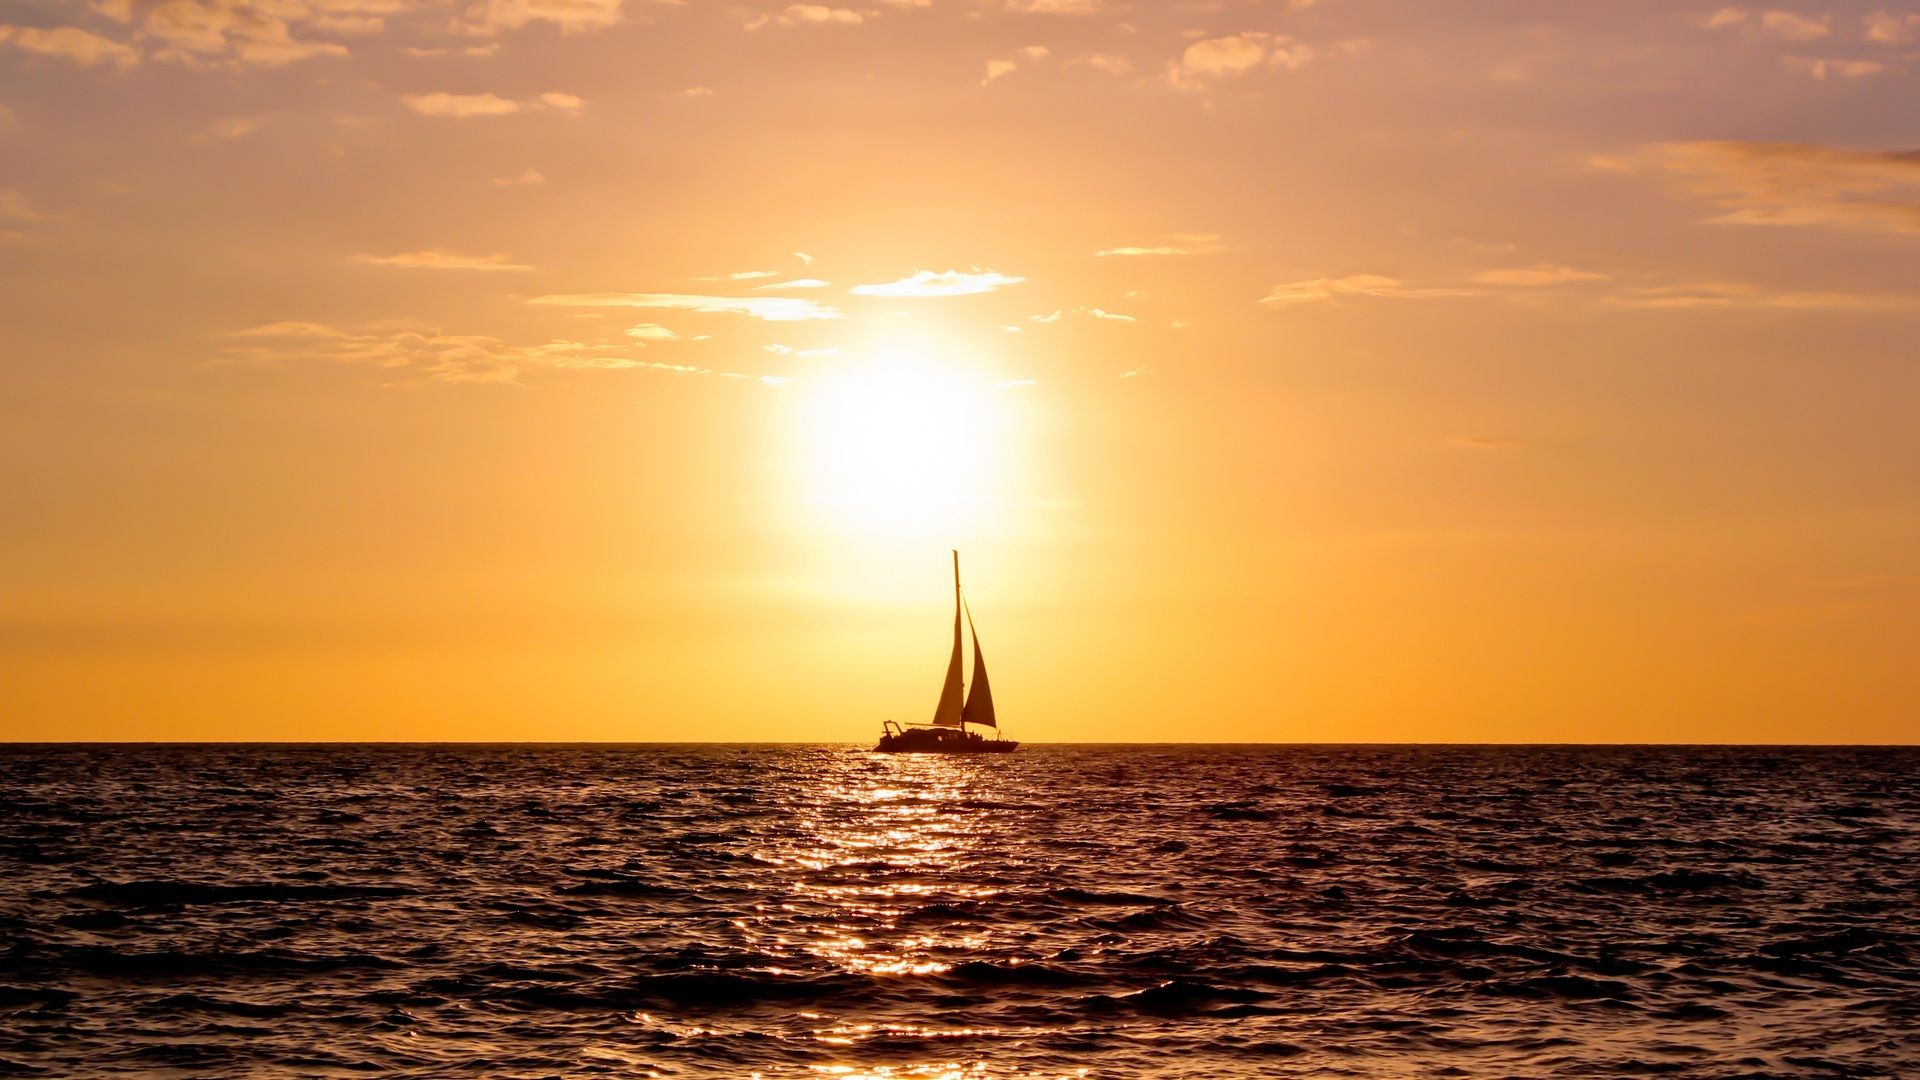 Only boat, ocean and sunrise...